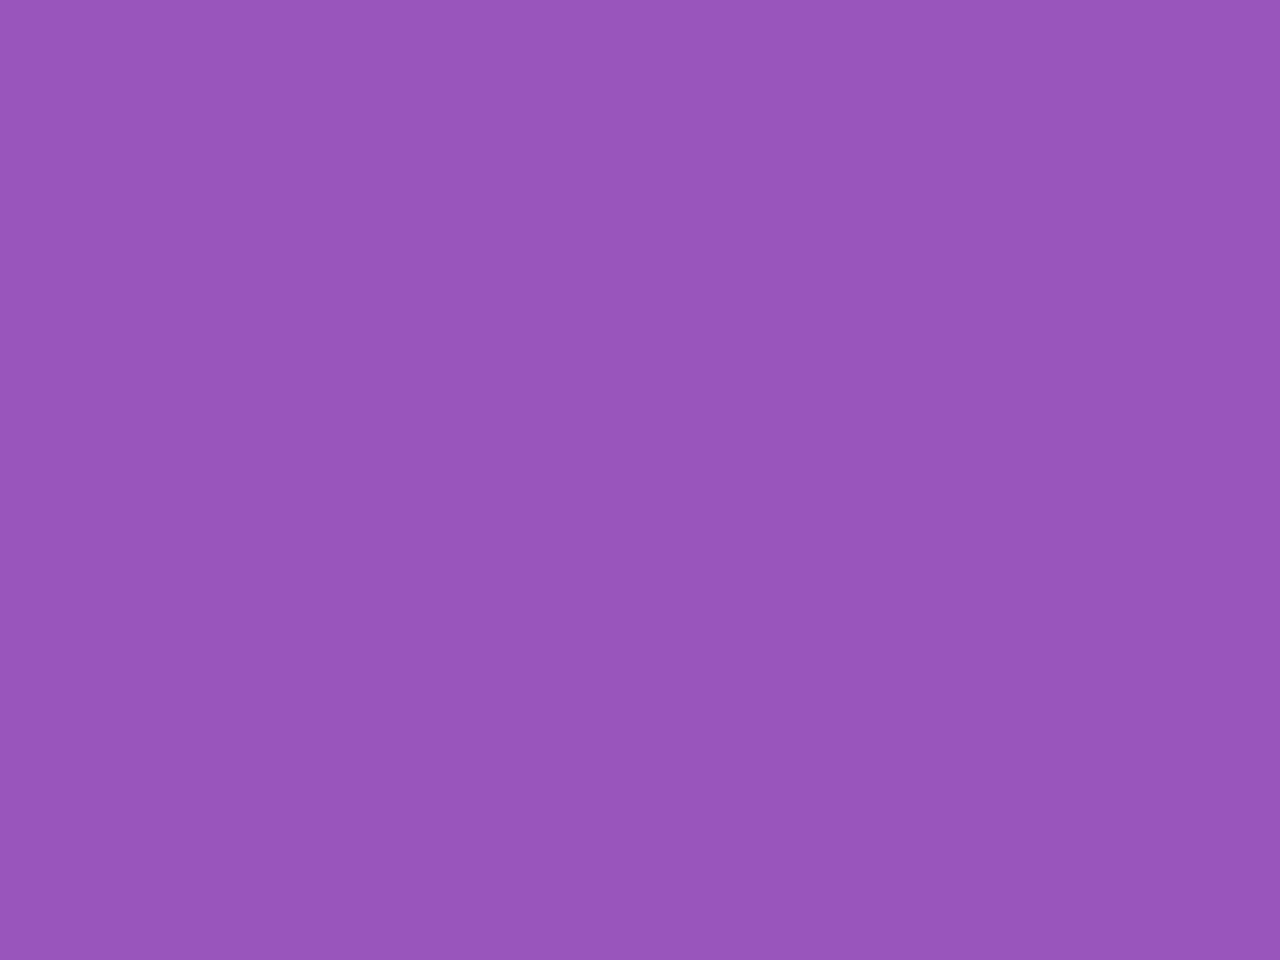 1280x960 Deep Lilac Solid Color Background